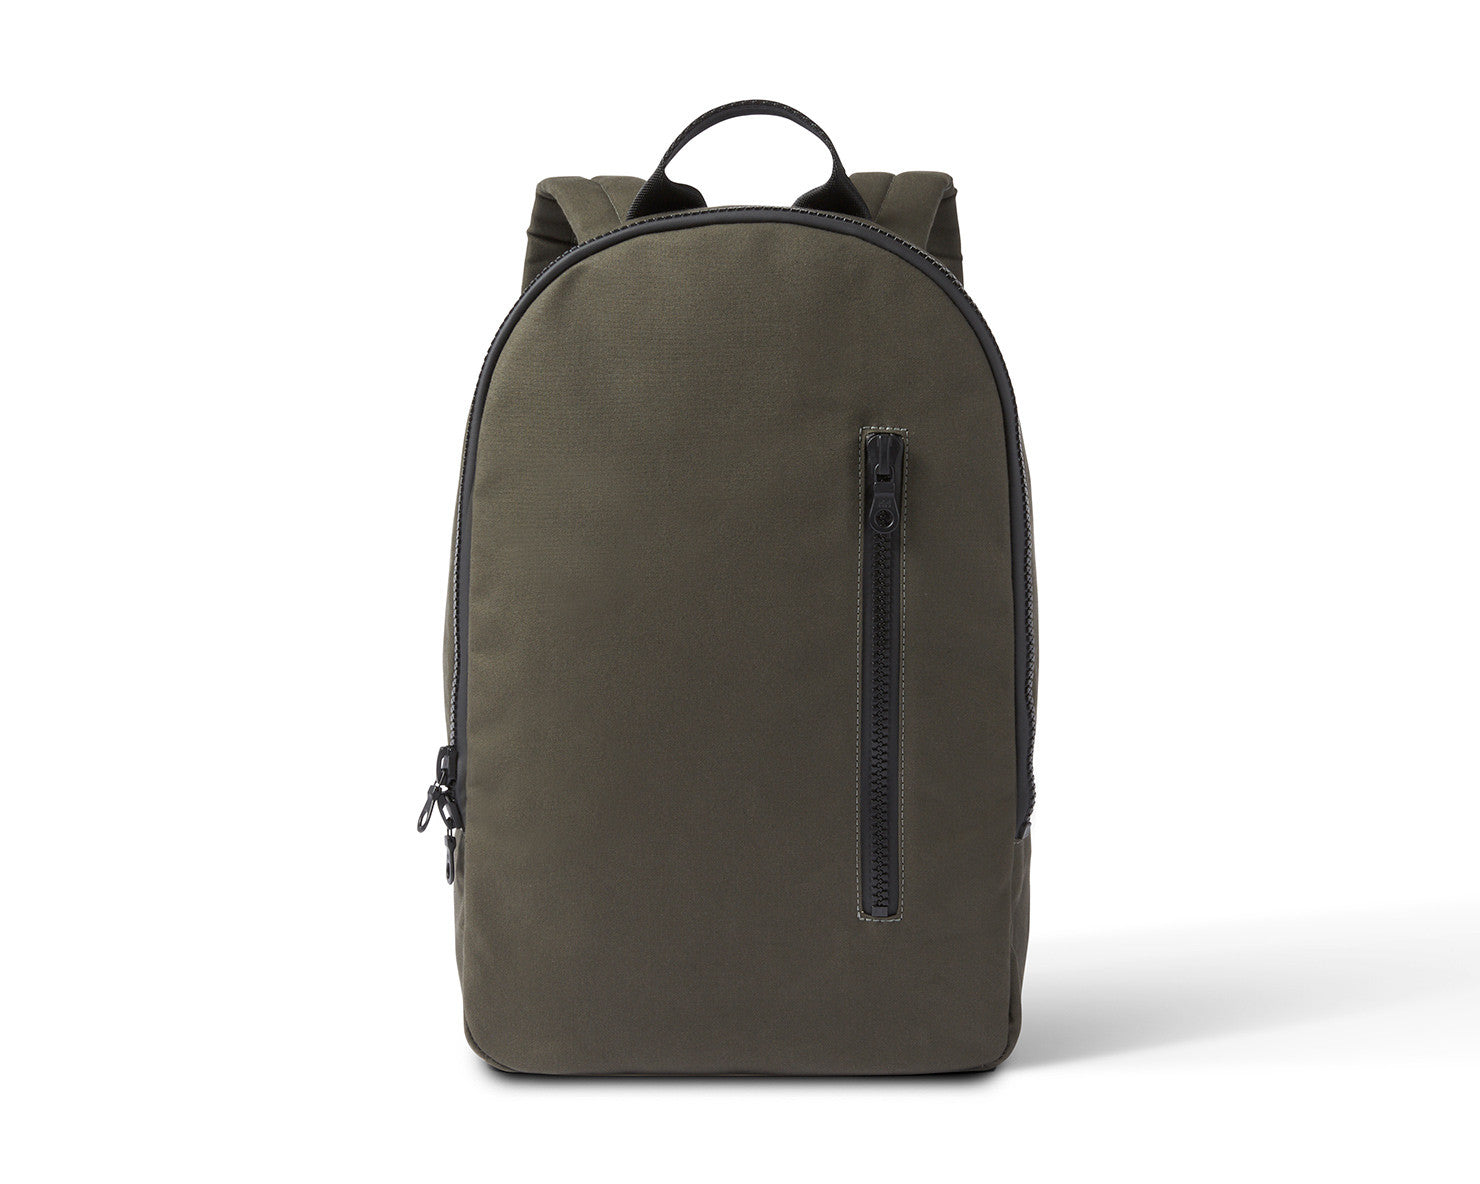 SPECIAL OPS BACKPACK 3.0 | KILLSPENCER® - Olive Drab Canvas